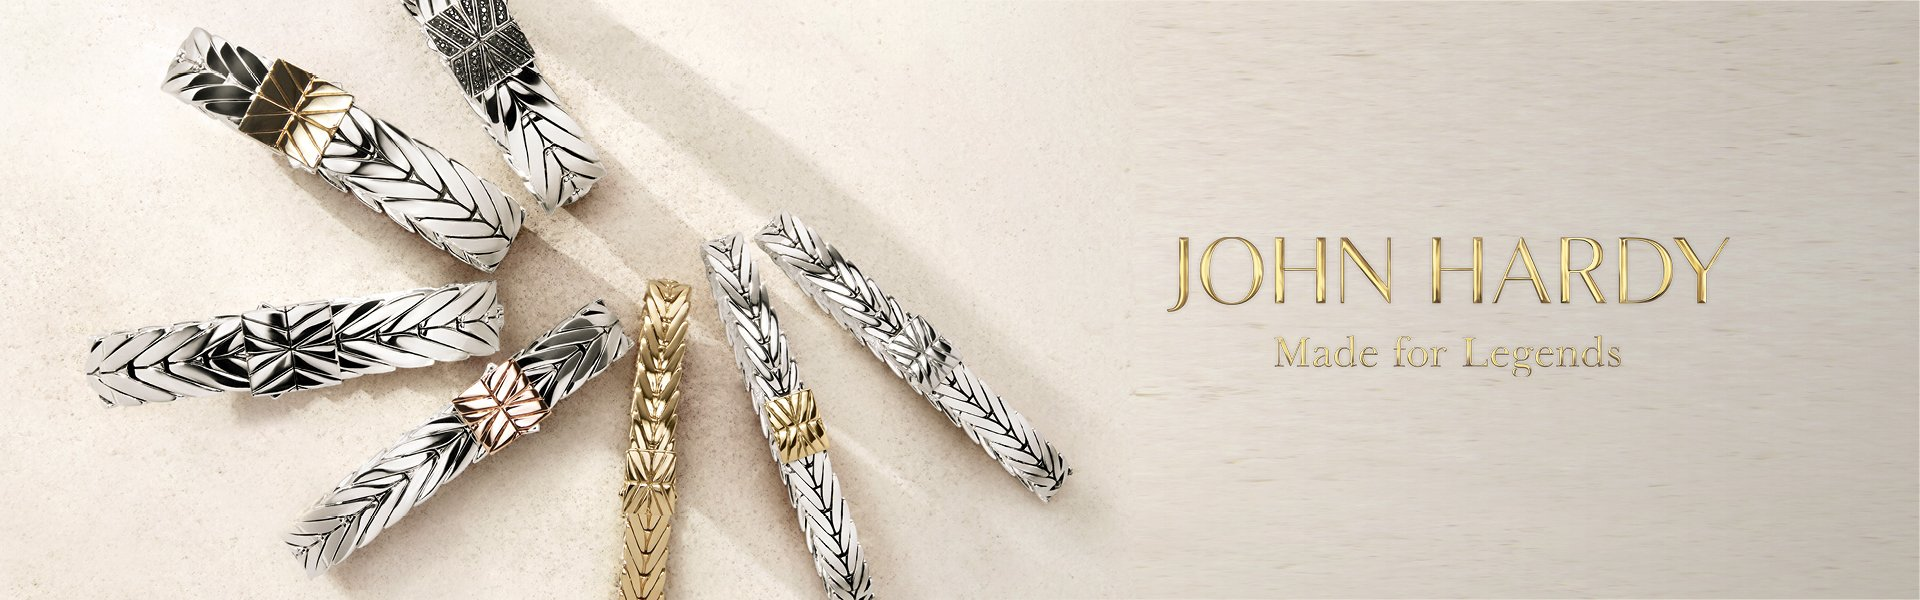 Kelley Jewelers John Hardy